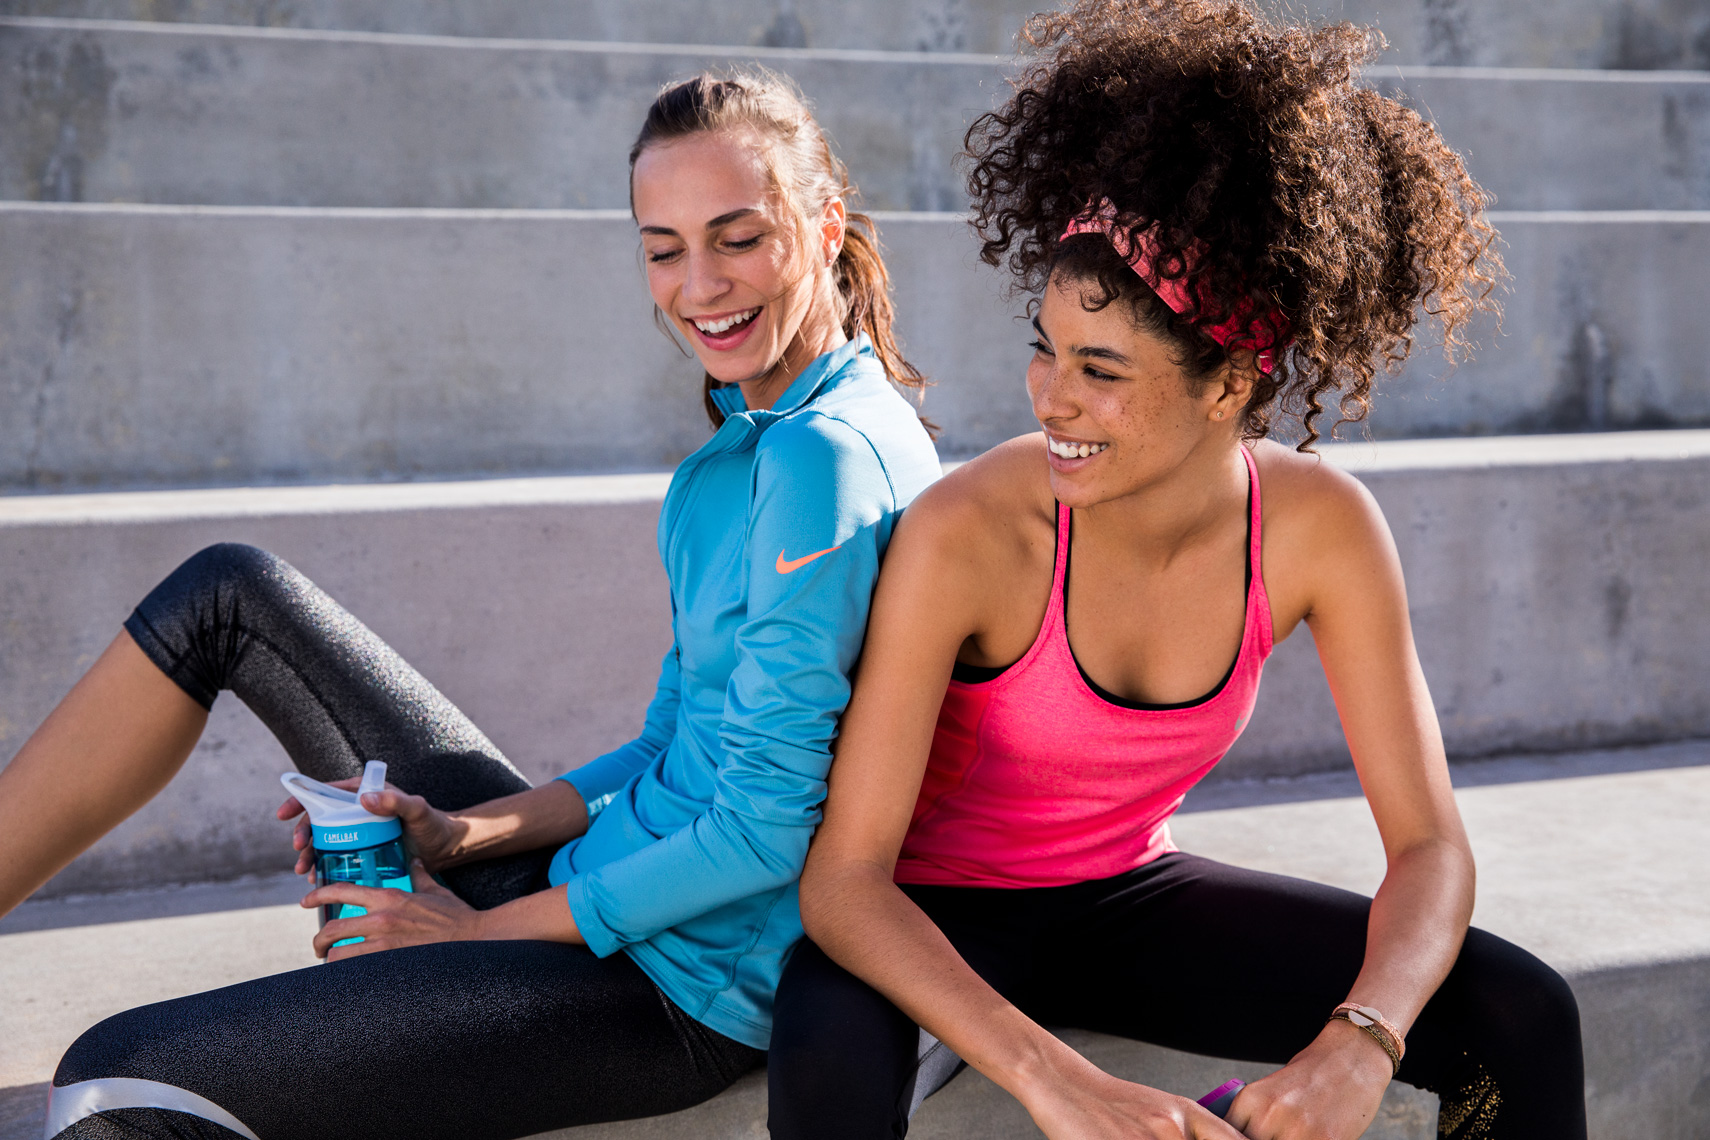 girls laughing after workout on cement bleachers